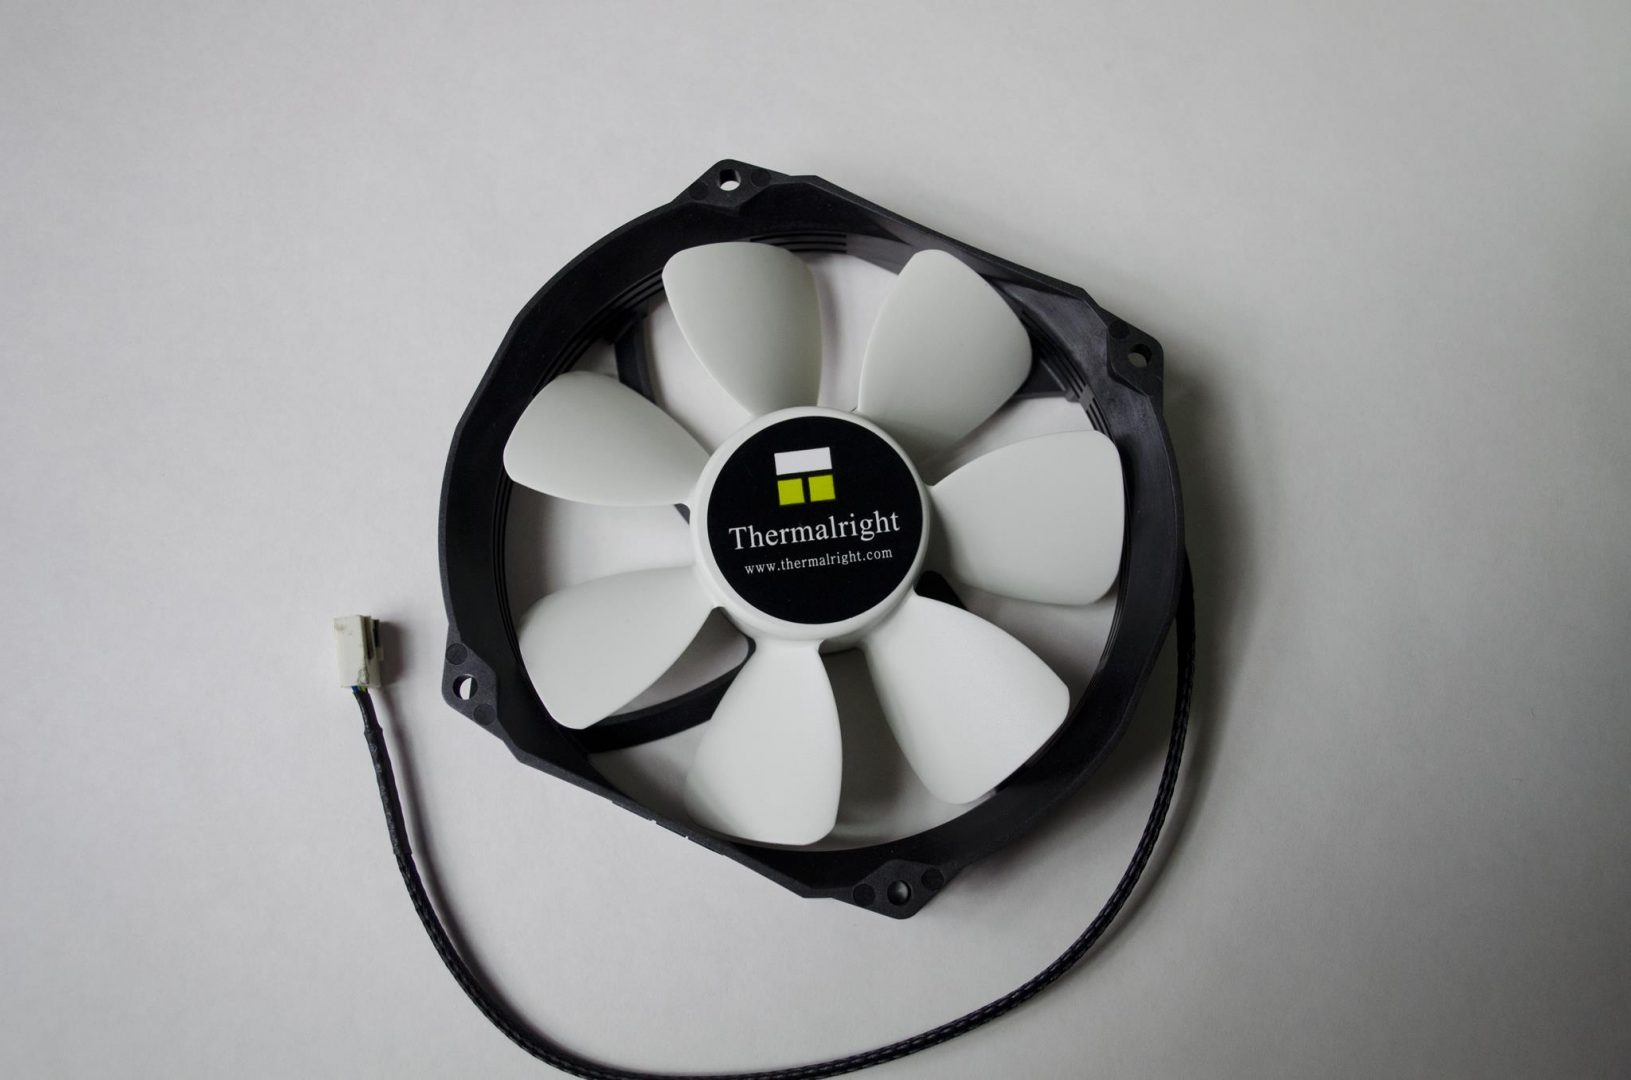 thermalright-macho-120-sbm-cpu-cooler-review-_4